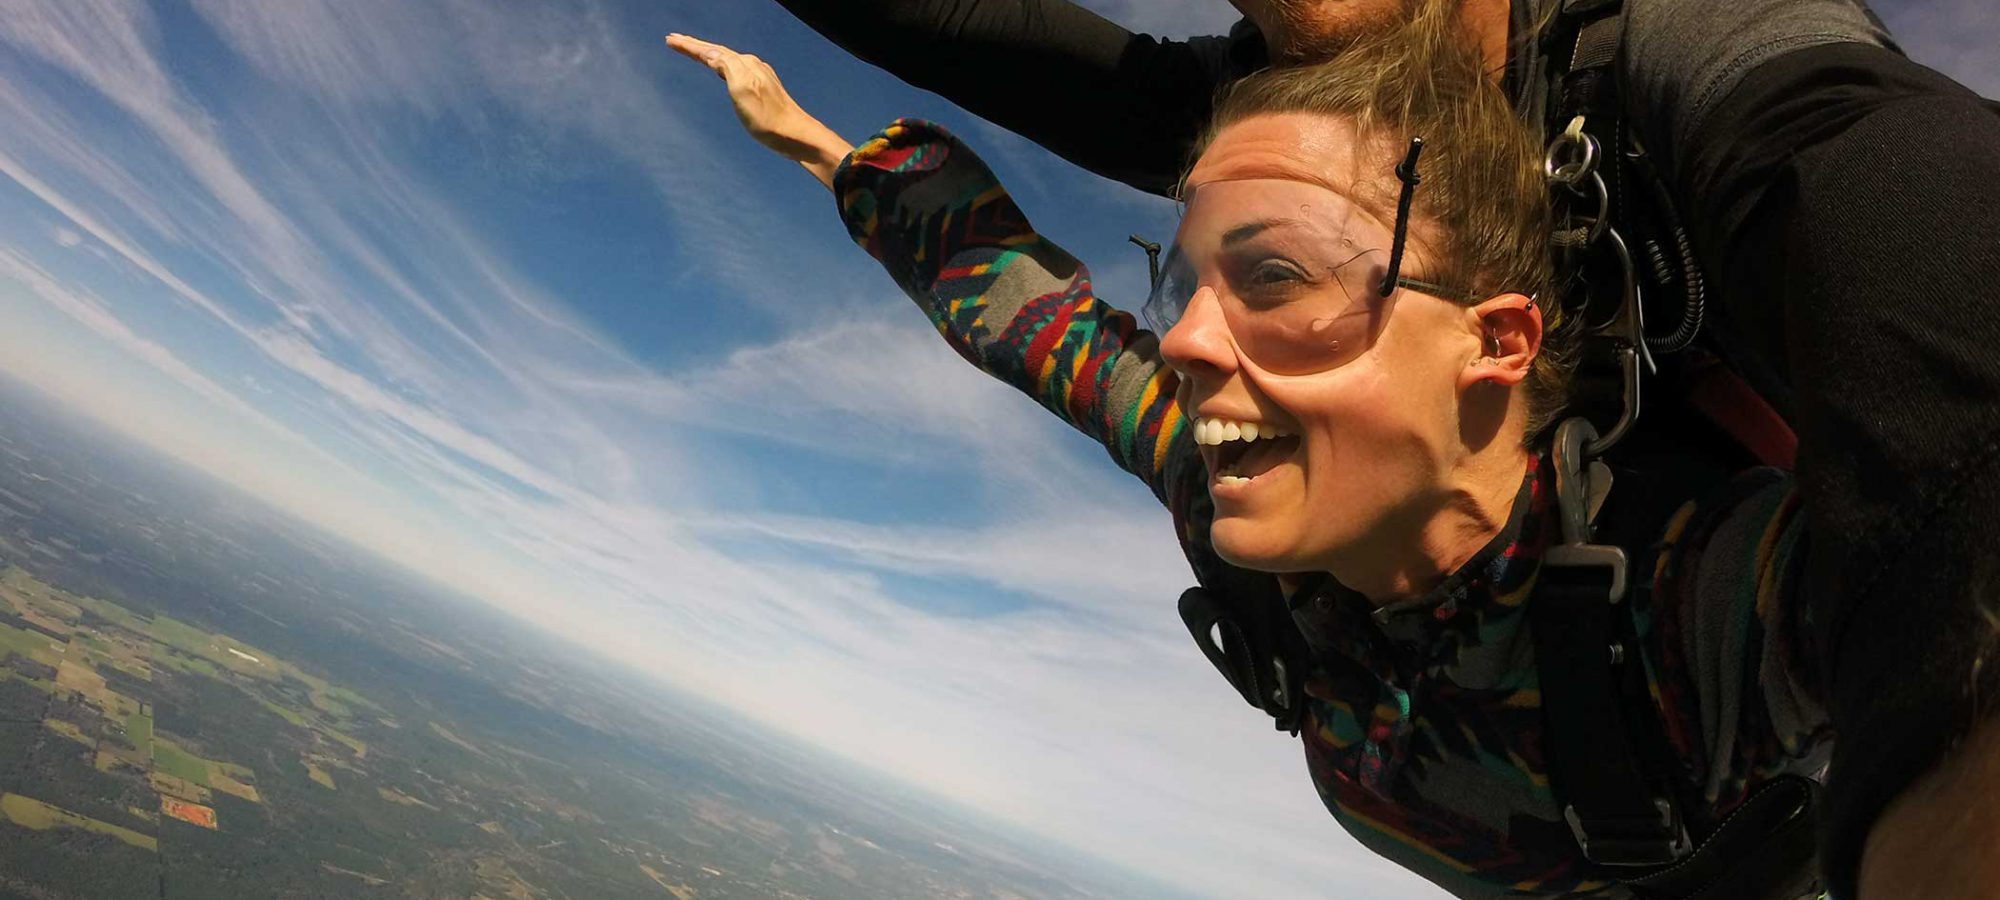 Women and tandem instructor smiling while skydiving